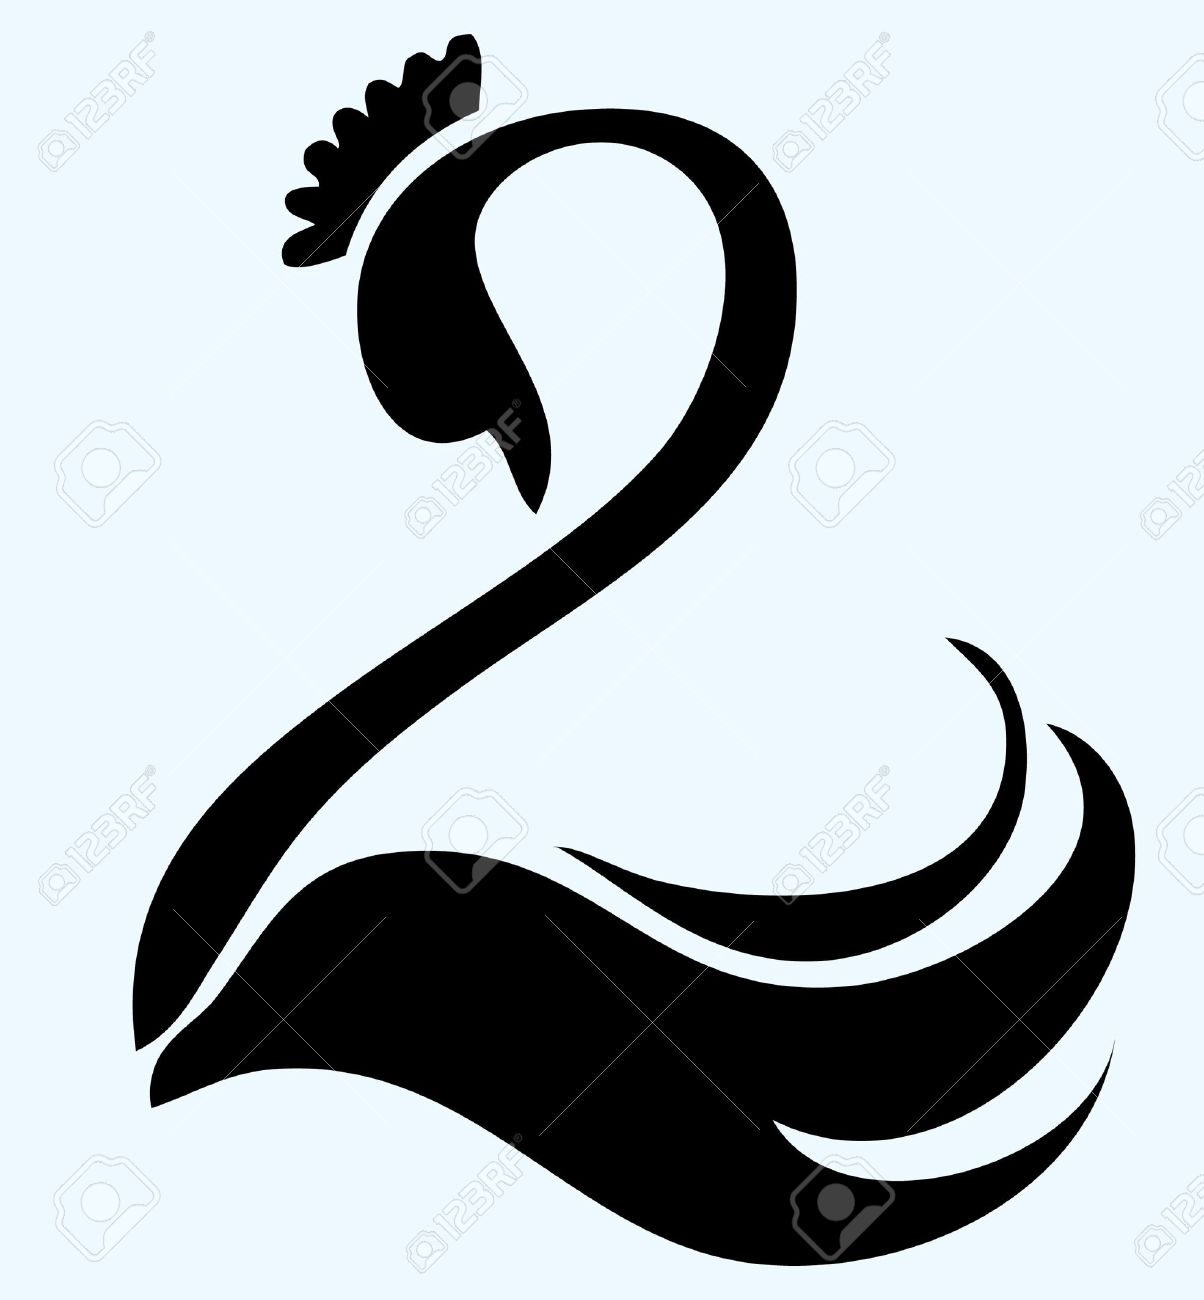 5,521 Swan Stock Vector Illustration And Royalty Free Swan Clipart.